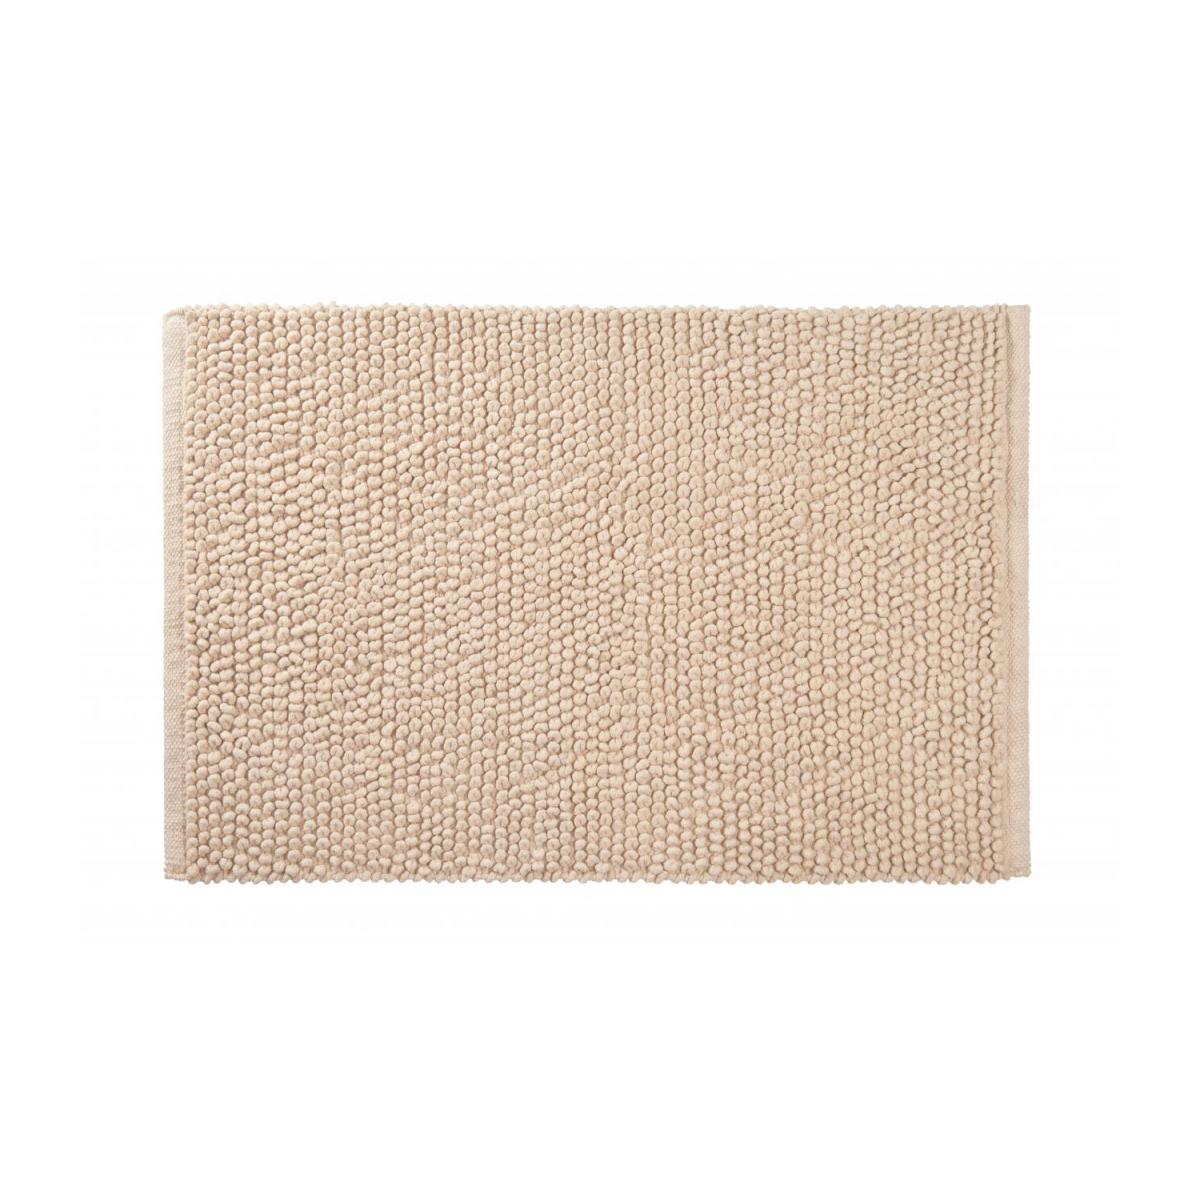 Badematte Taupe Bobble Badematte 50x80 Taupe